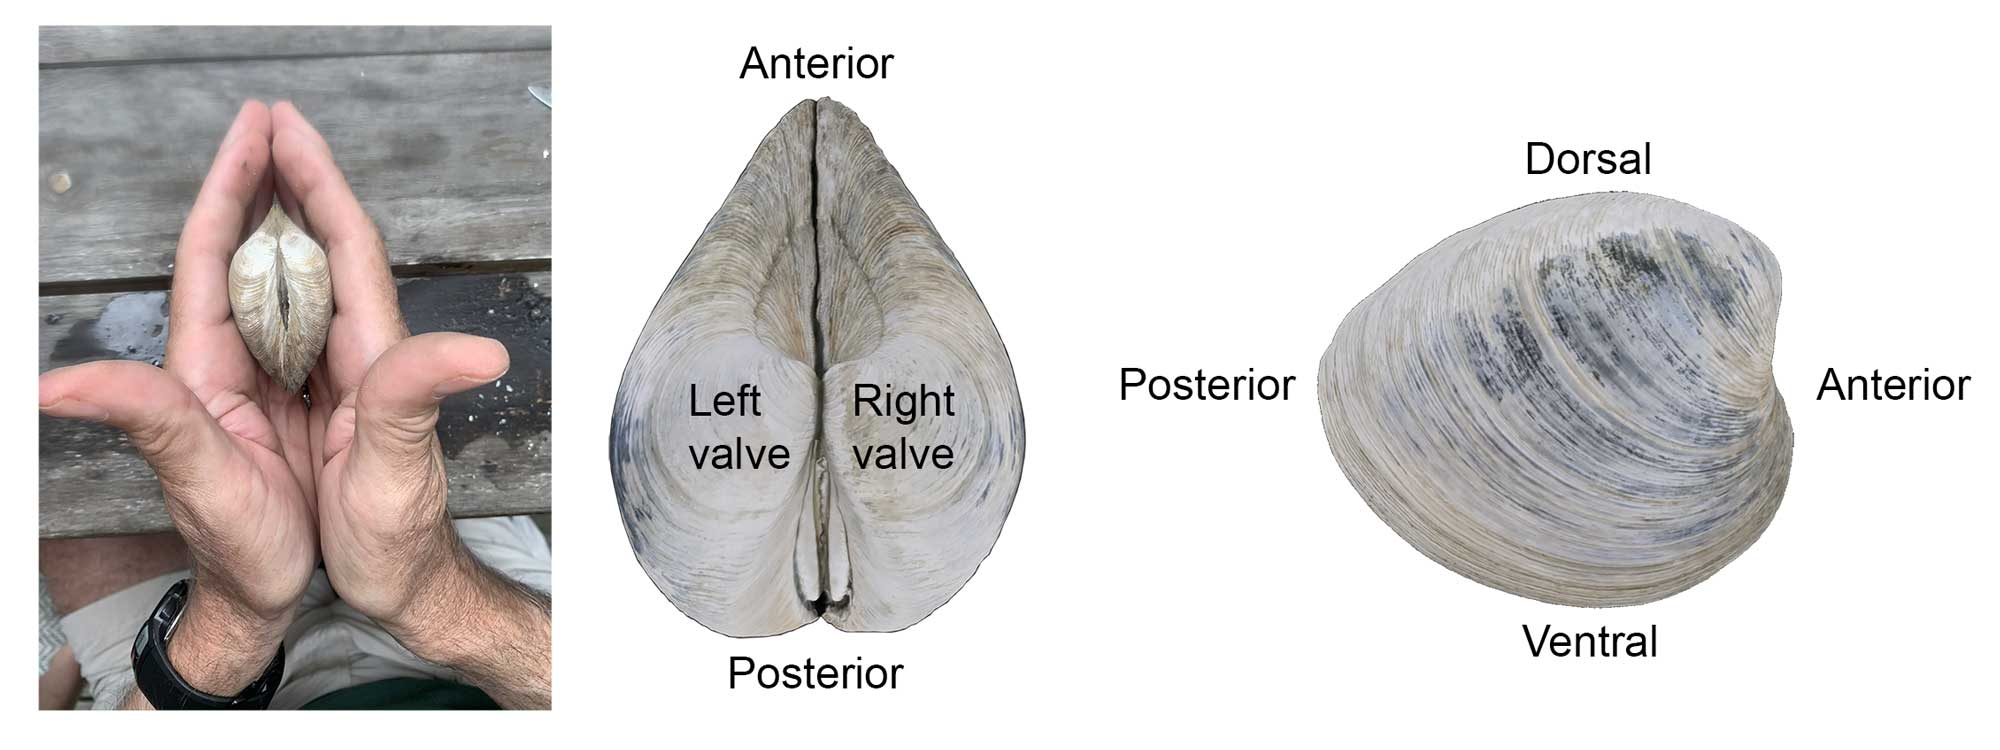 Illustration showing how to differentiate a left and right valve on a clam, as wells the relative orientations of the dorsal, ventral, posterior, and anterior sides of a clam shell.